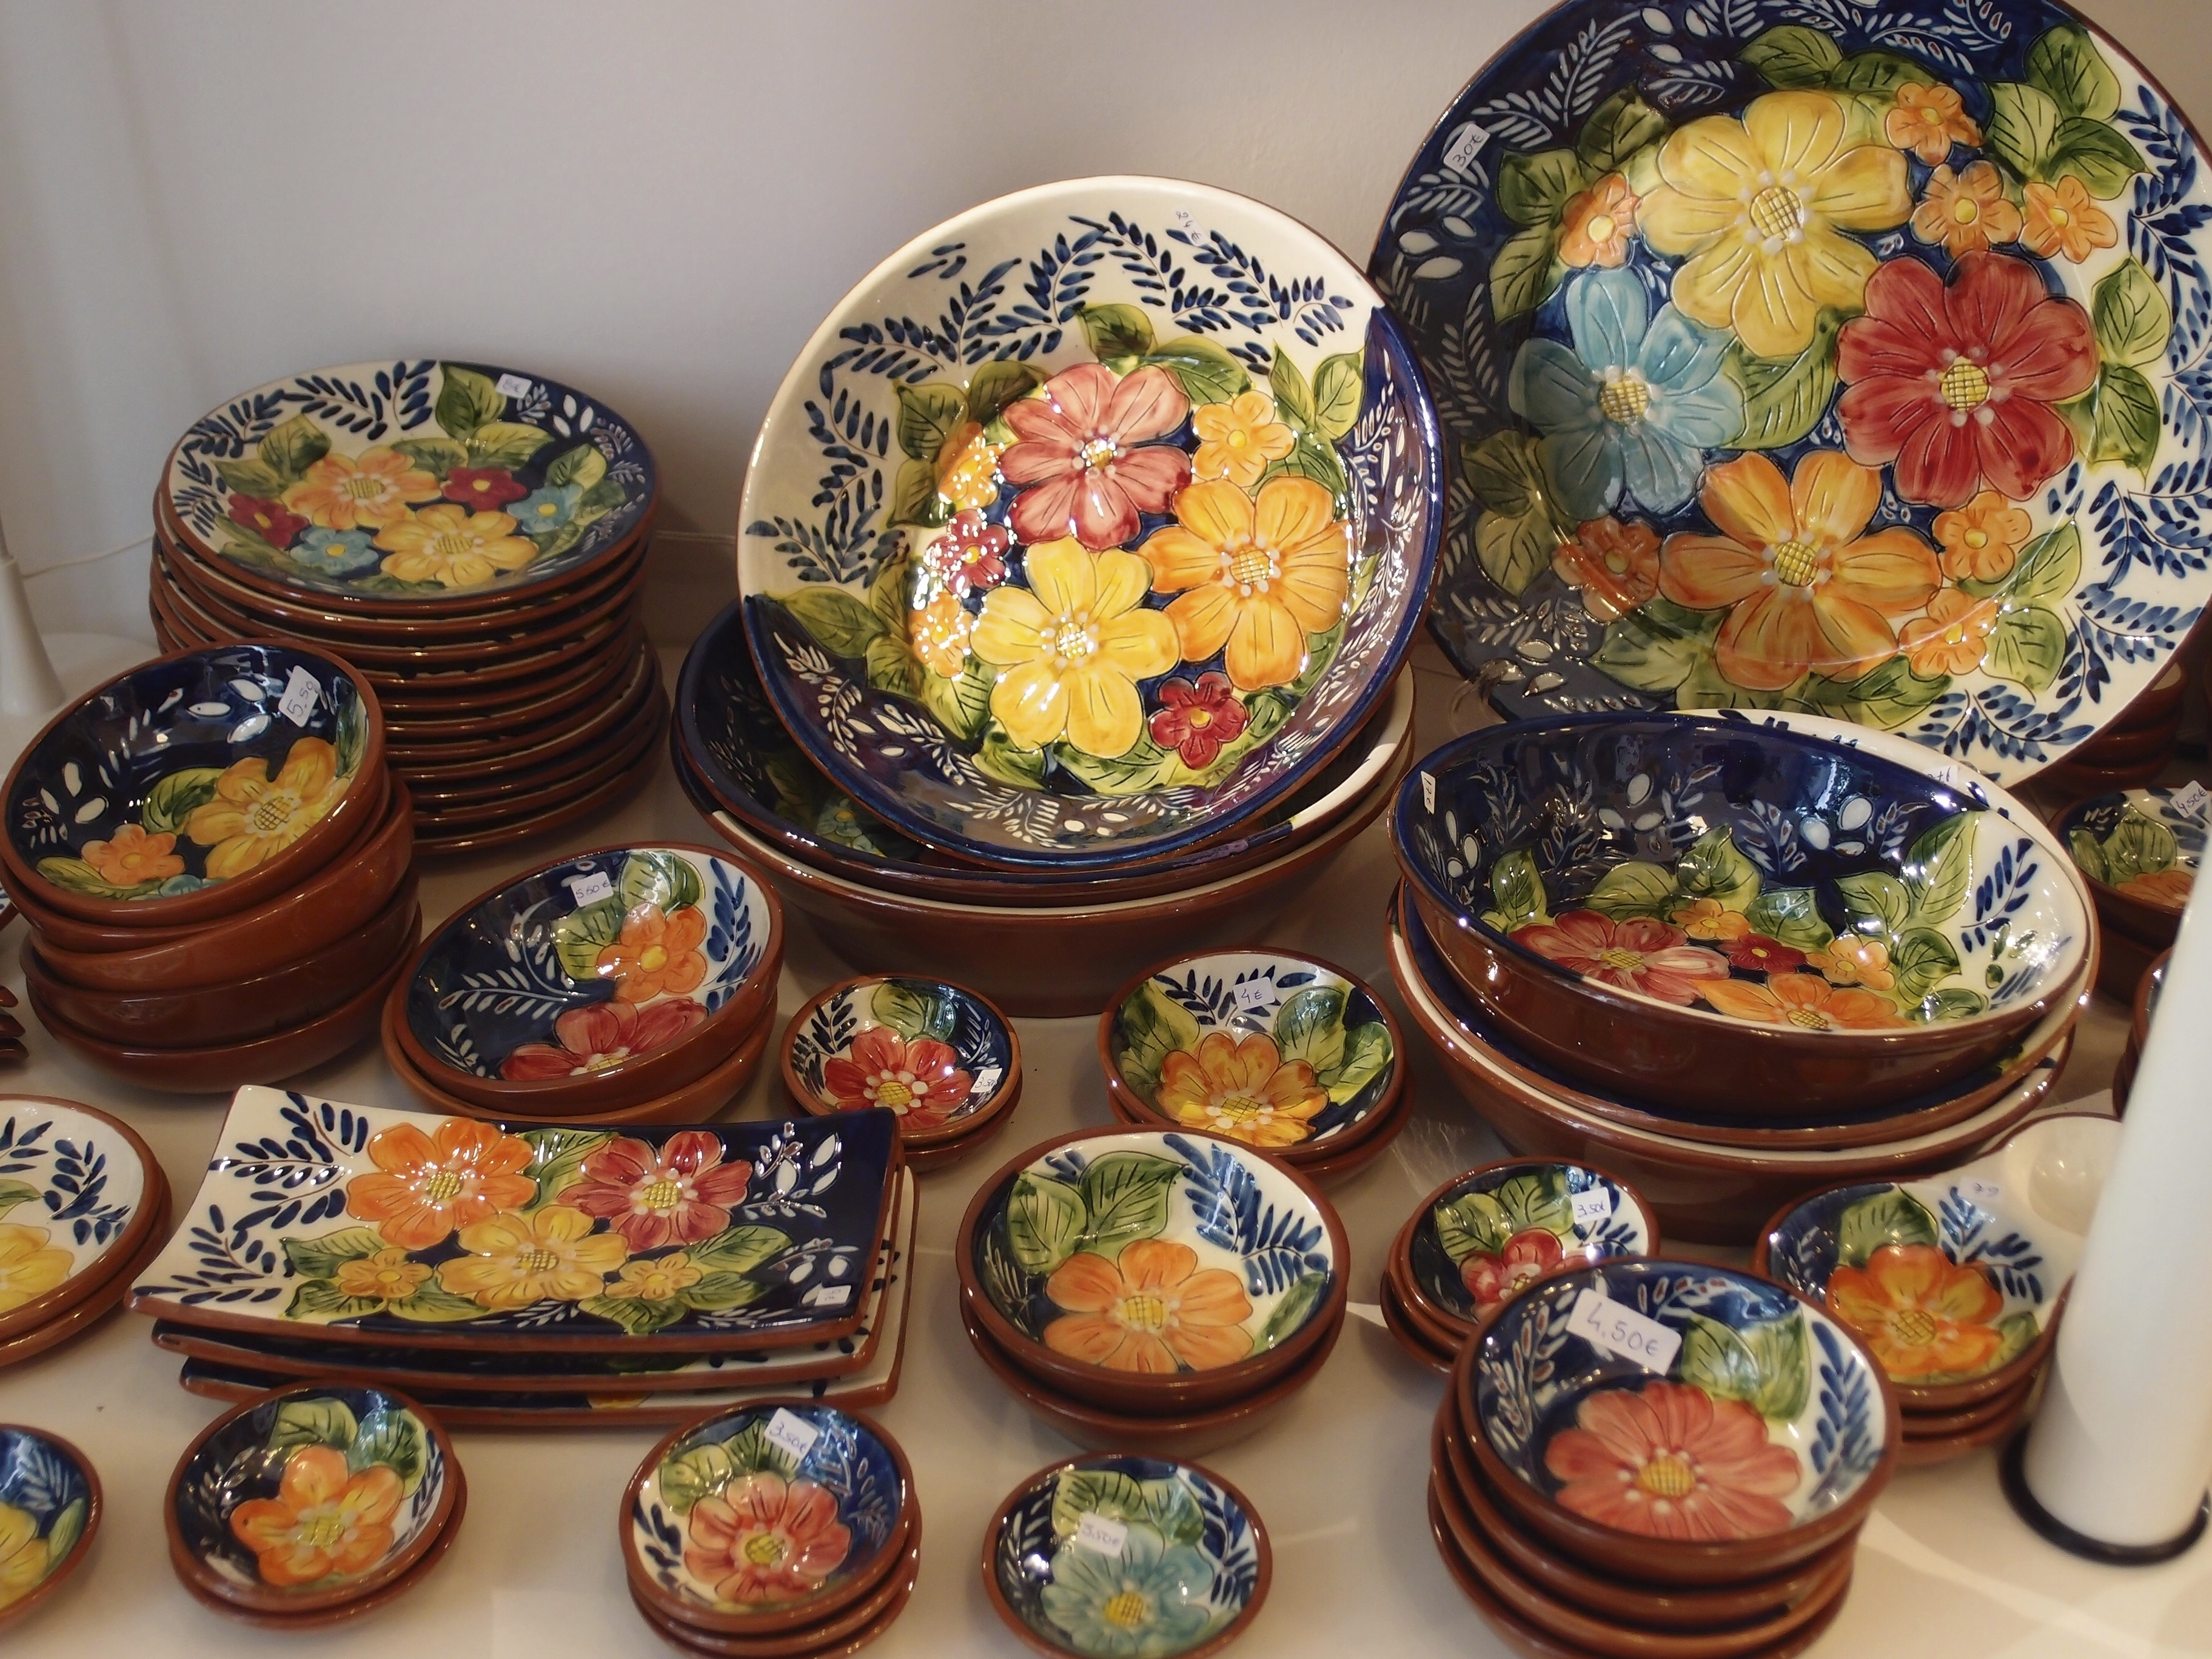 For all of us who love dishes Portugal is tableware heaven! & Let\u0027s Go! Part II | Lulu\u0027s Musings